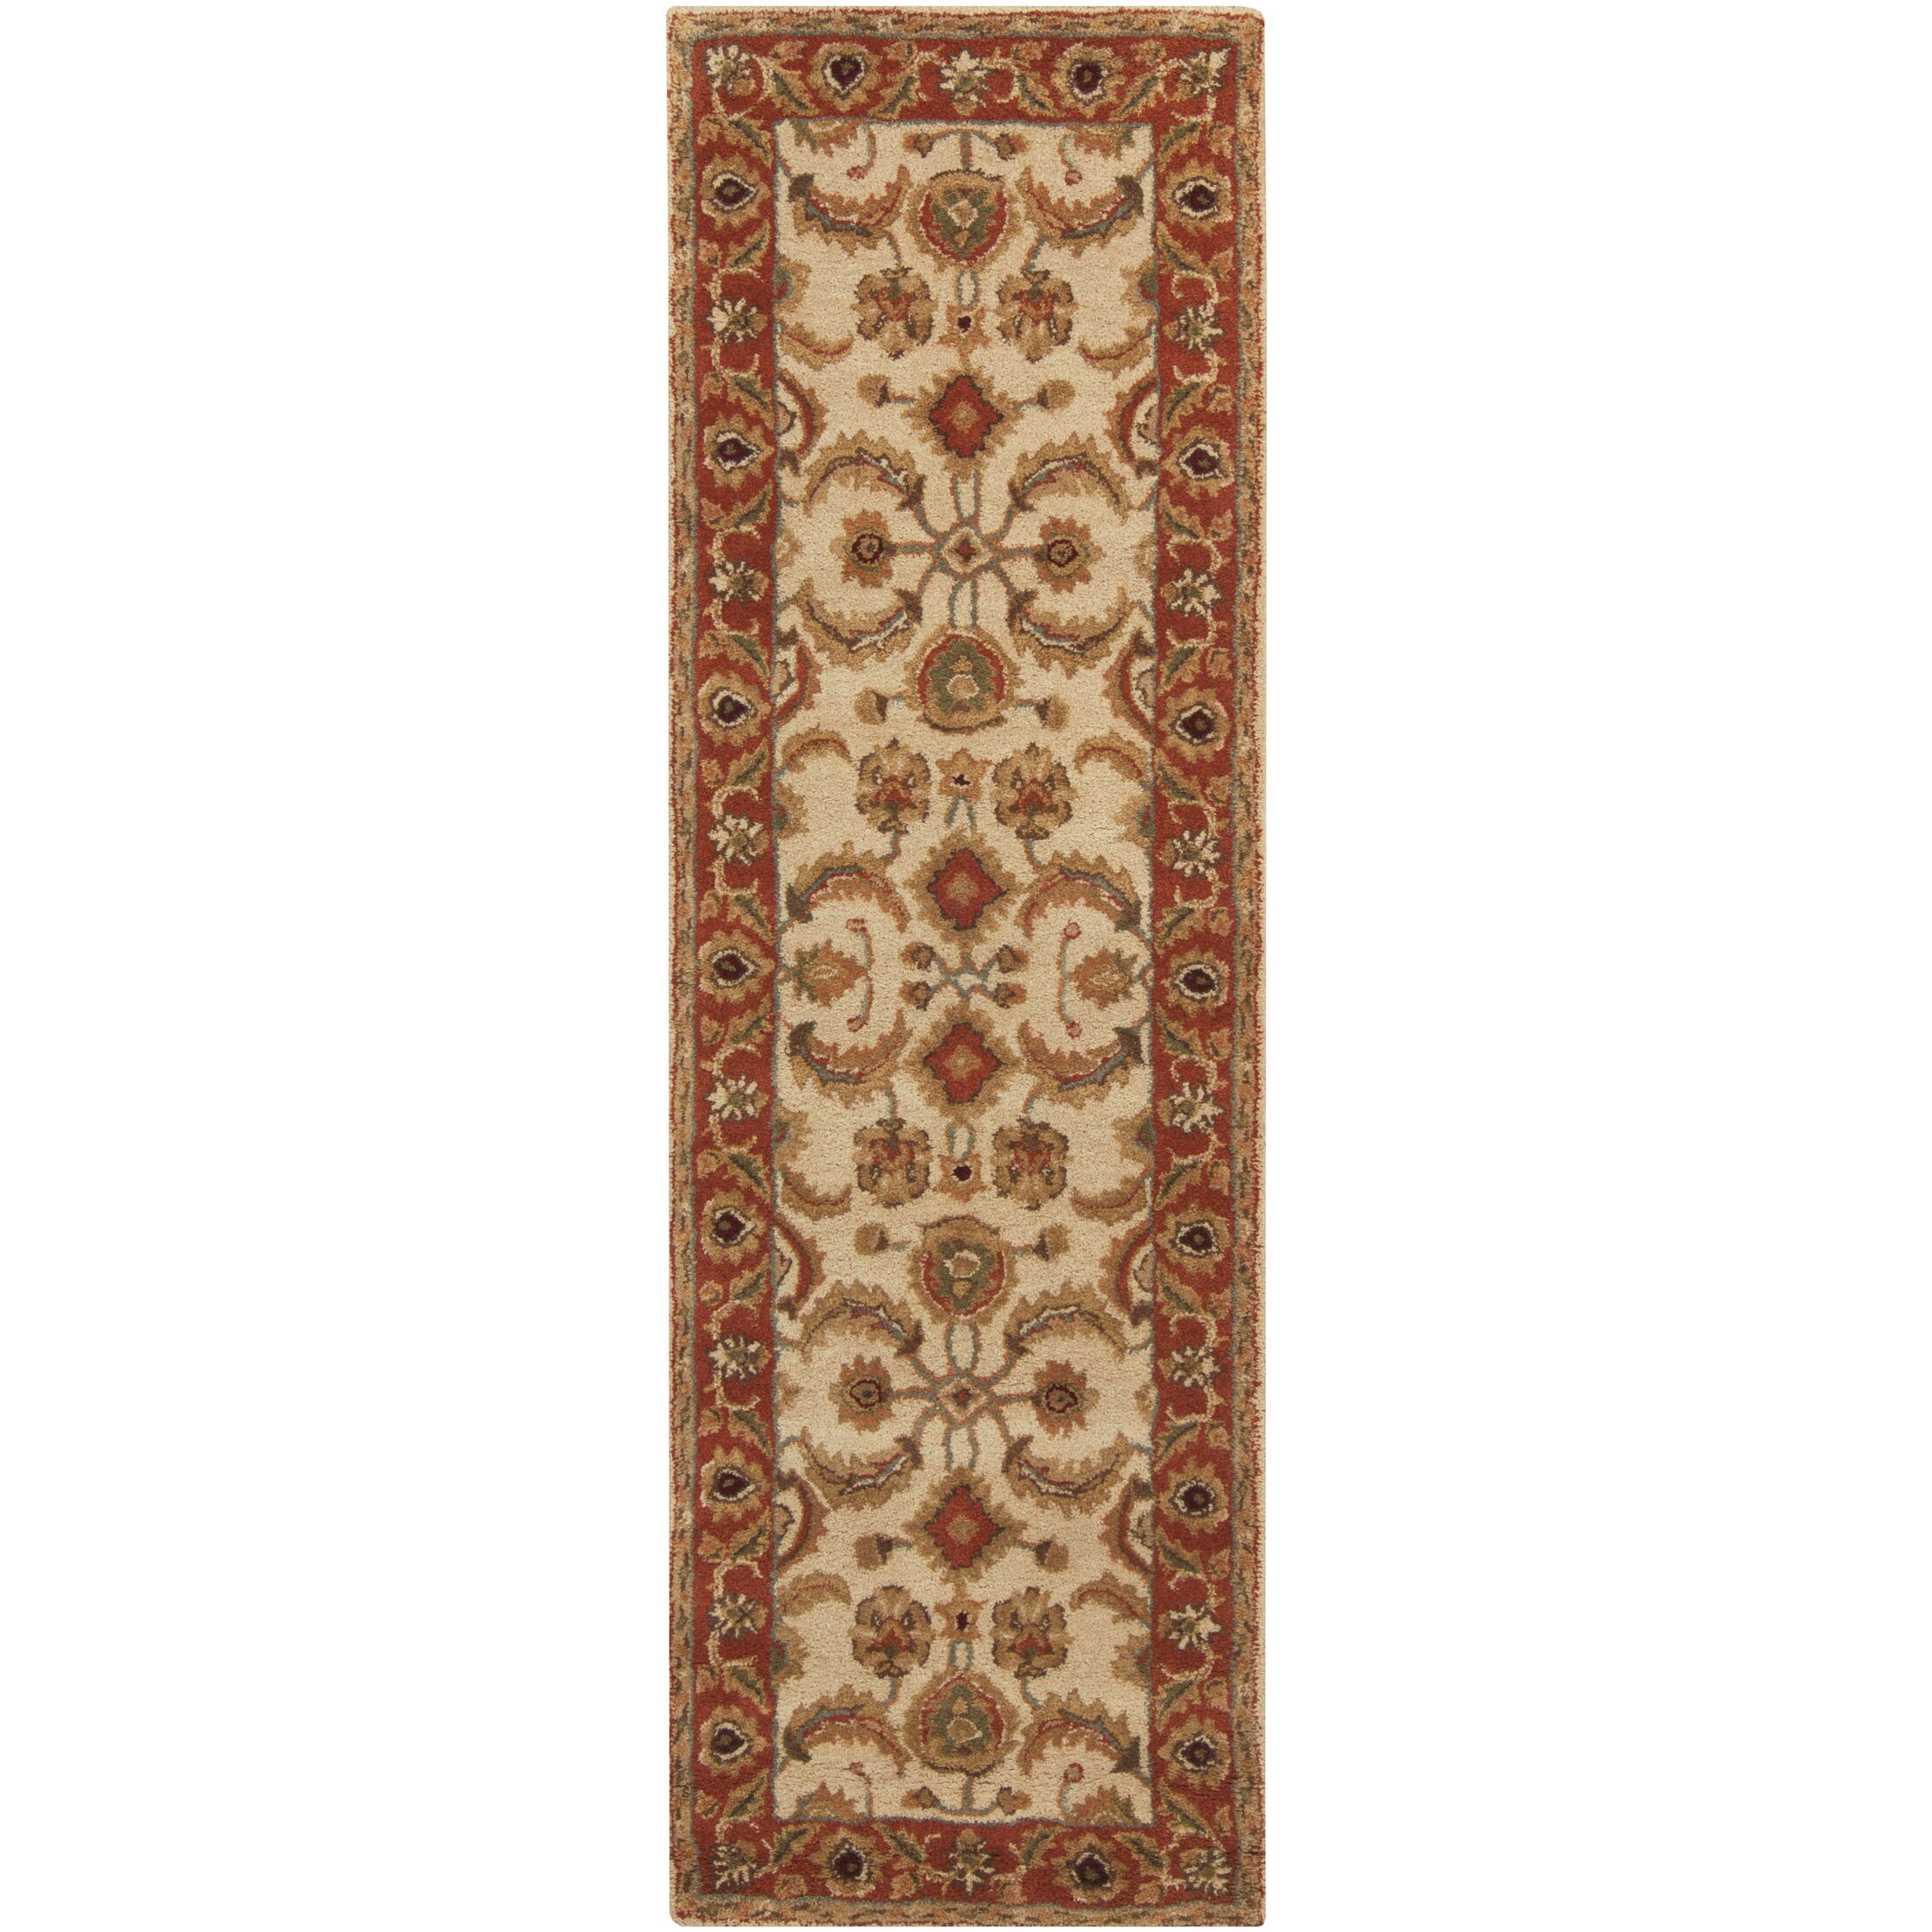 Arcadia Hand-Tufted Red/Brown Area Rug Rug Size: Runner 2'6